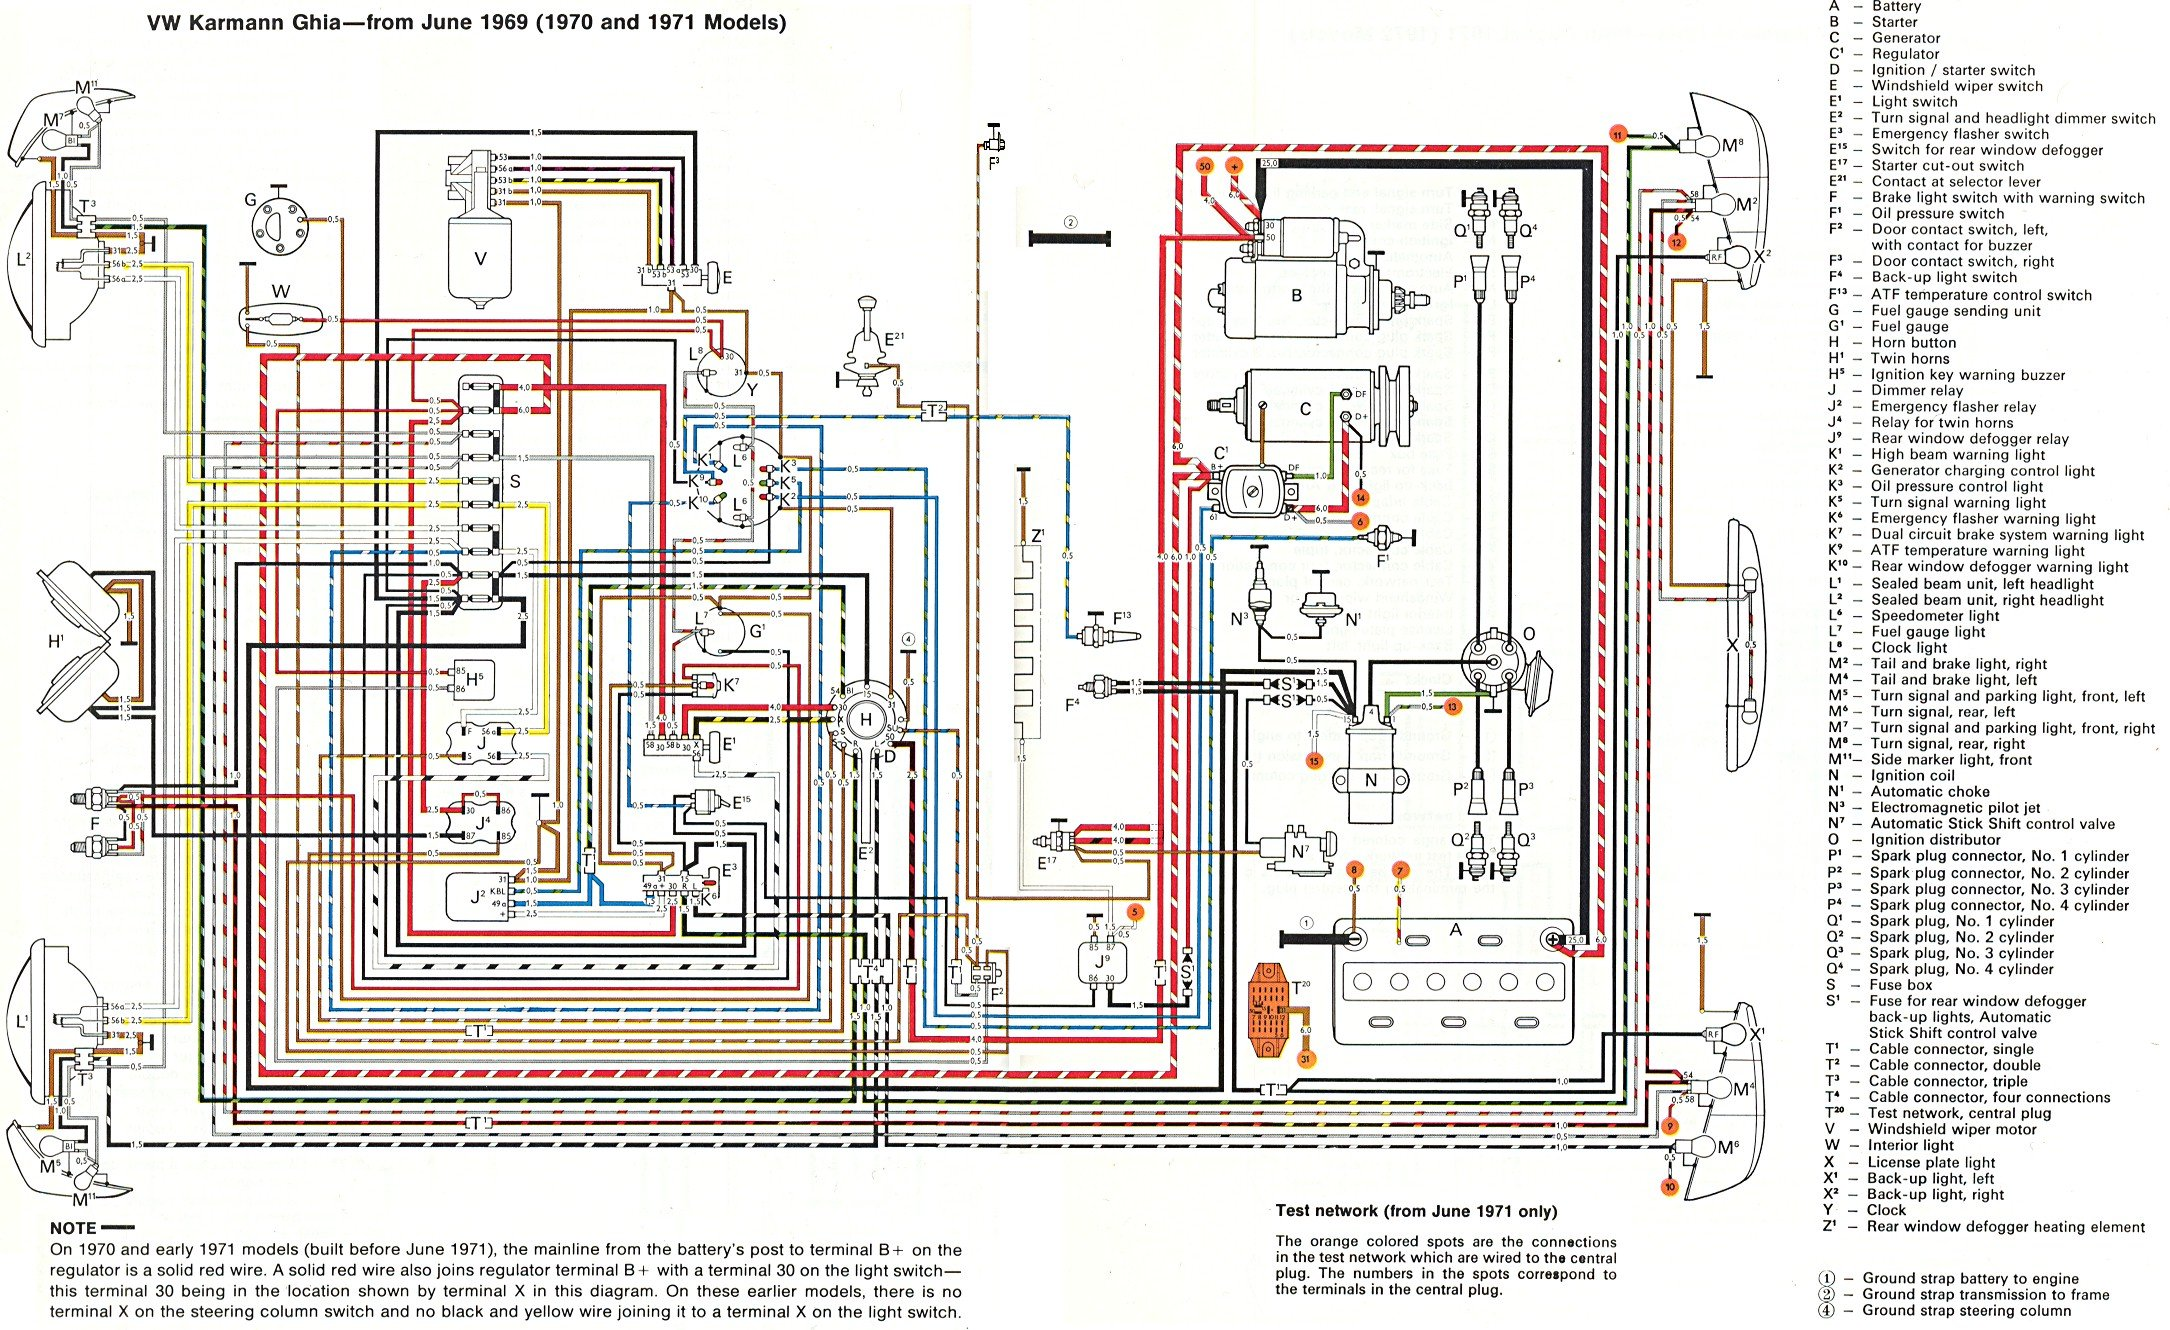 69 chevy pickup wiring diagram free download wiring diagram wiring 79 camaro dash wiring 67 vw wiring harness free download diagram schematic wiring 69 chevy pickup wiring diagram free download wiring diagram